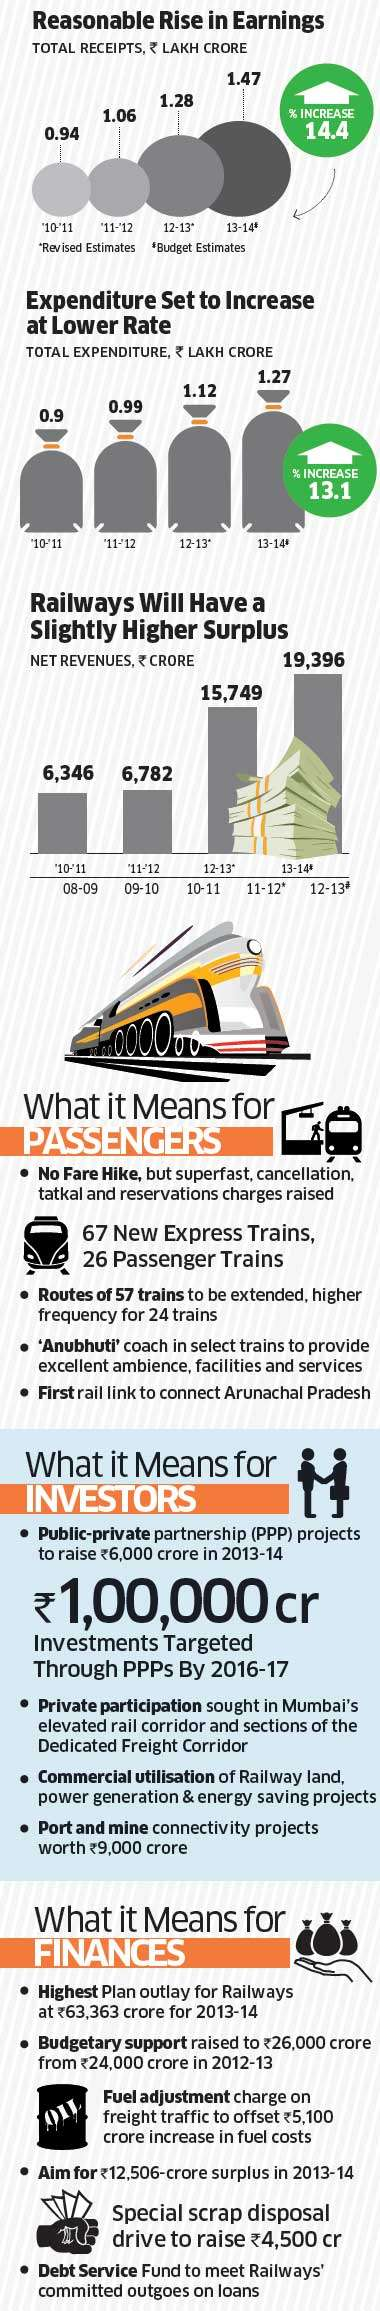 The passenger fare increase in January and 5% freight rise in the budget has marginally improved Railway finances.